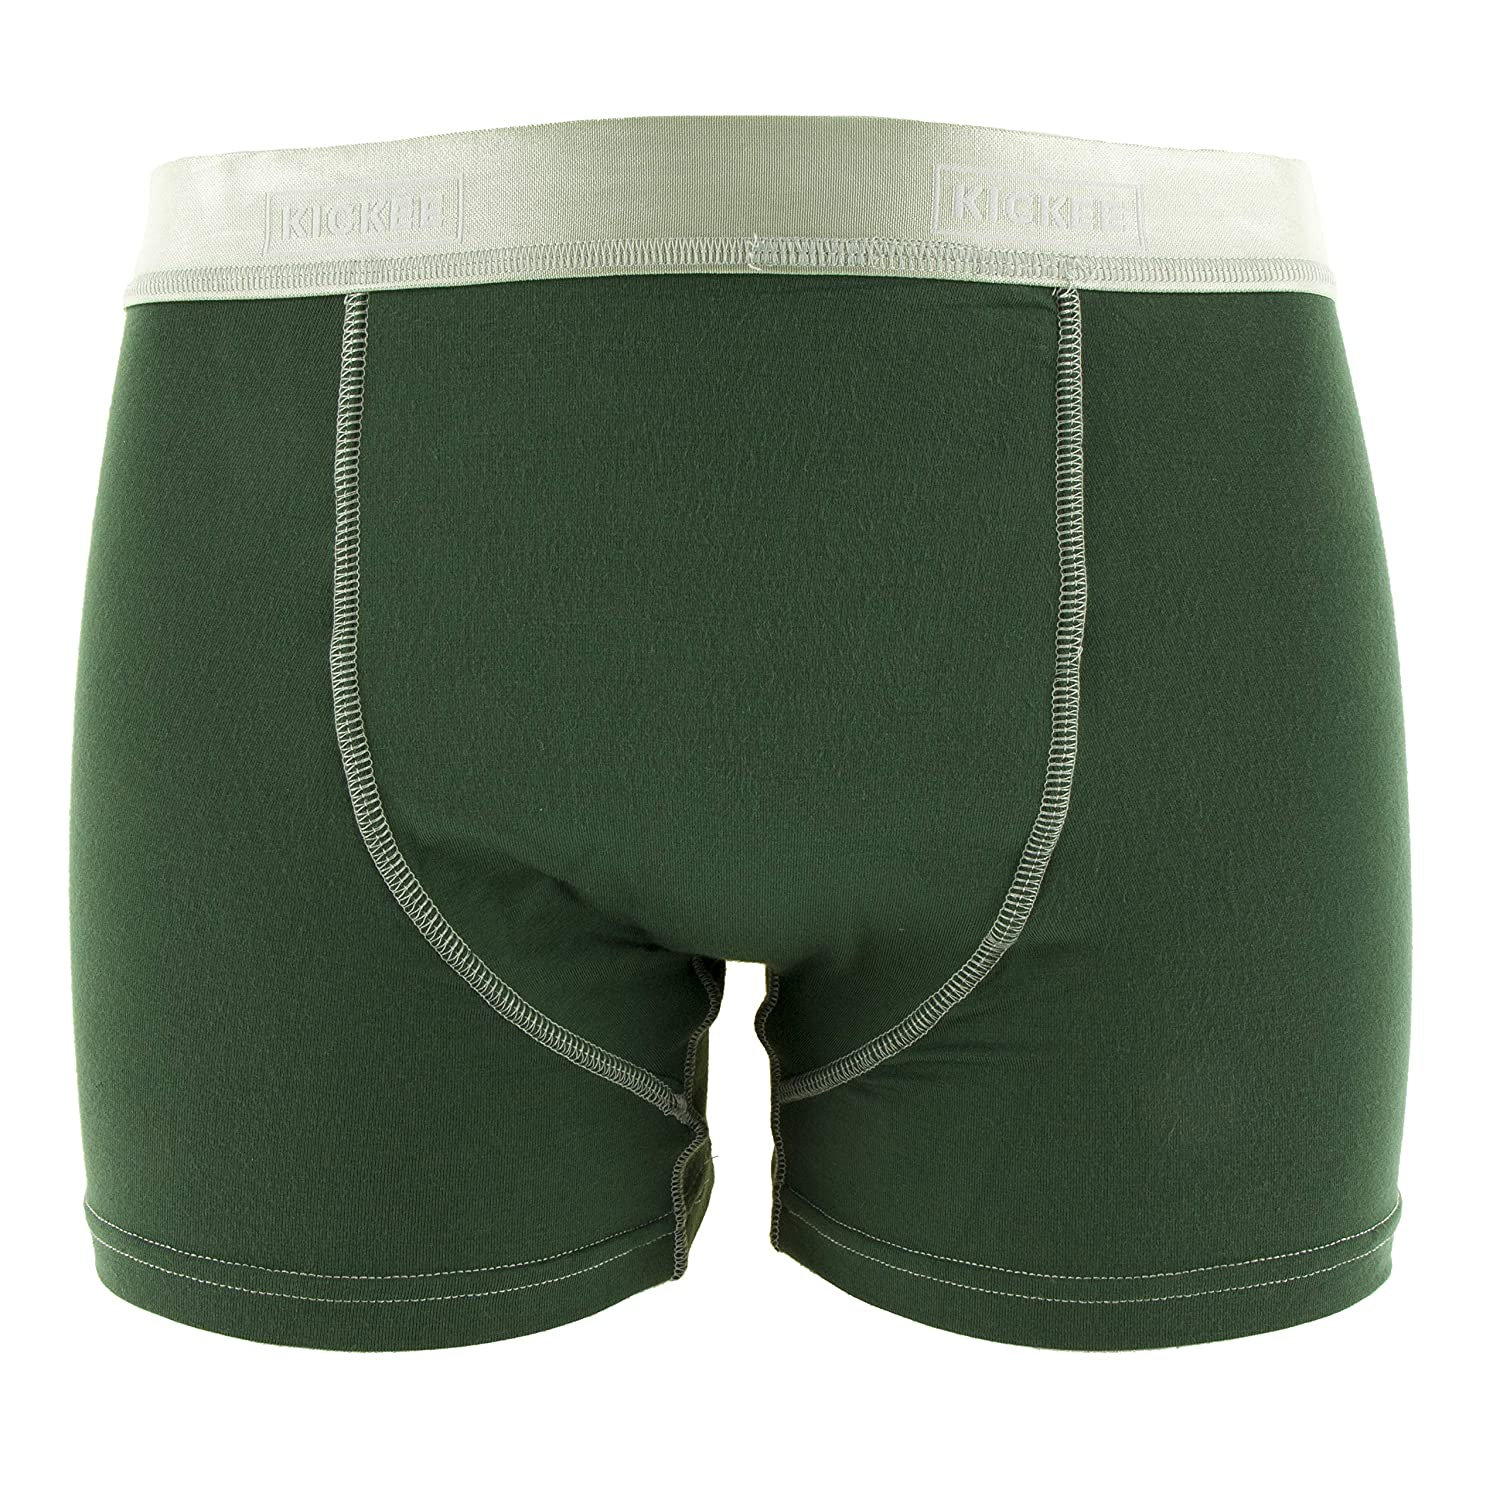 XS KICKEE Mens Solid Boxer Brief in Topiary with Aloe